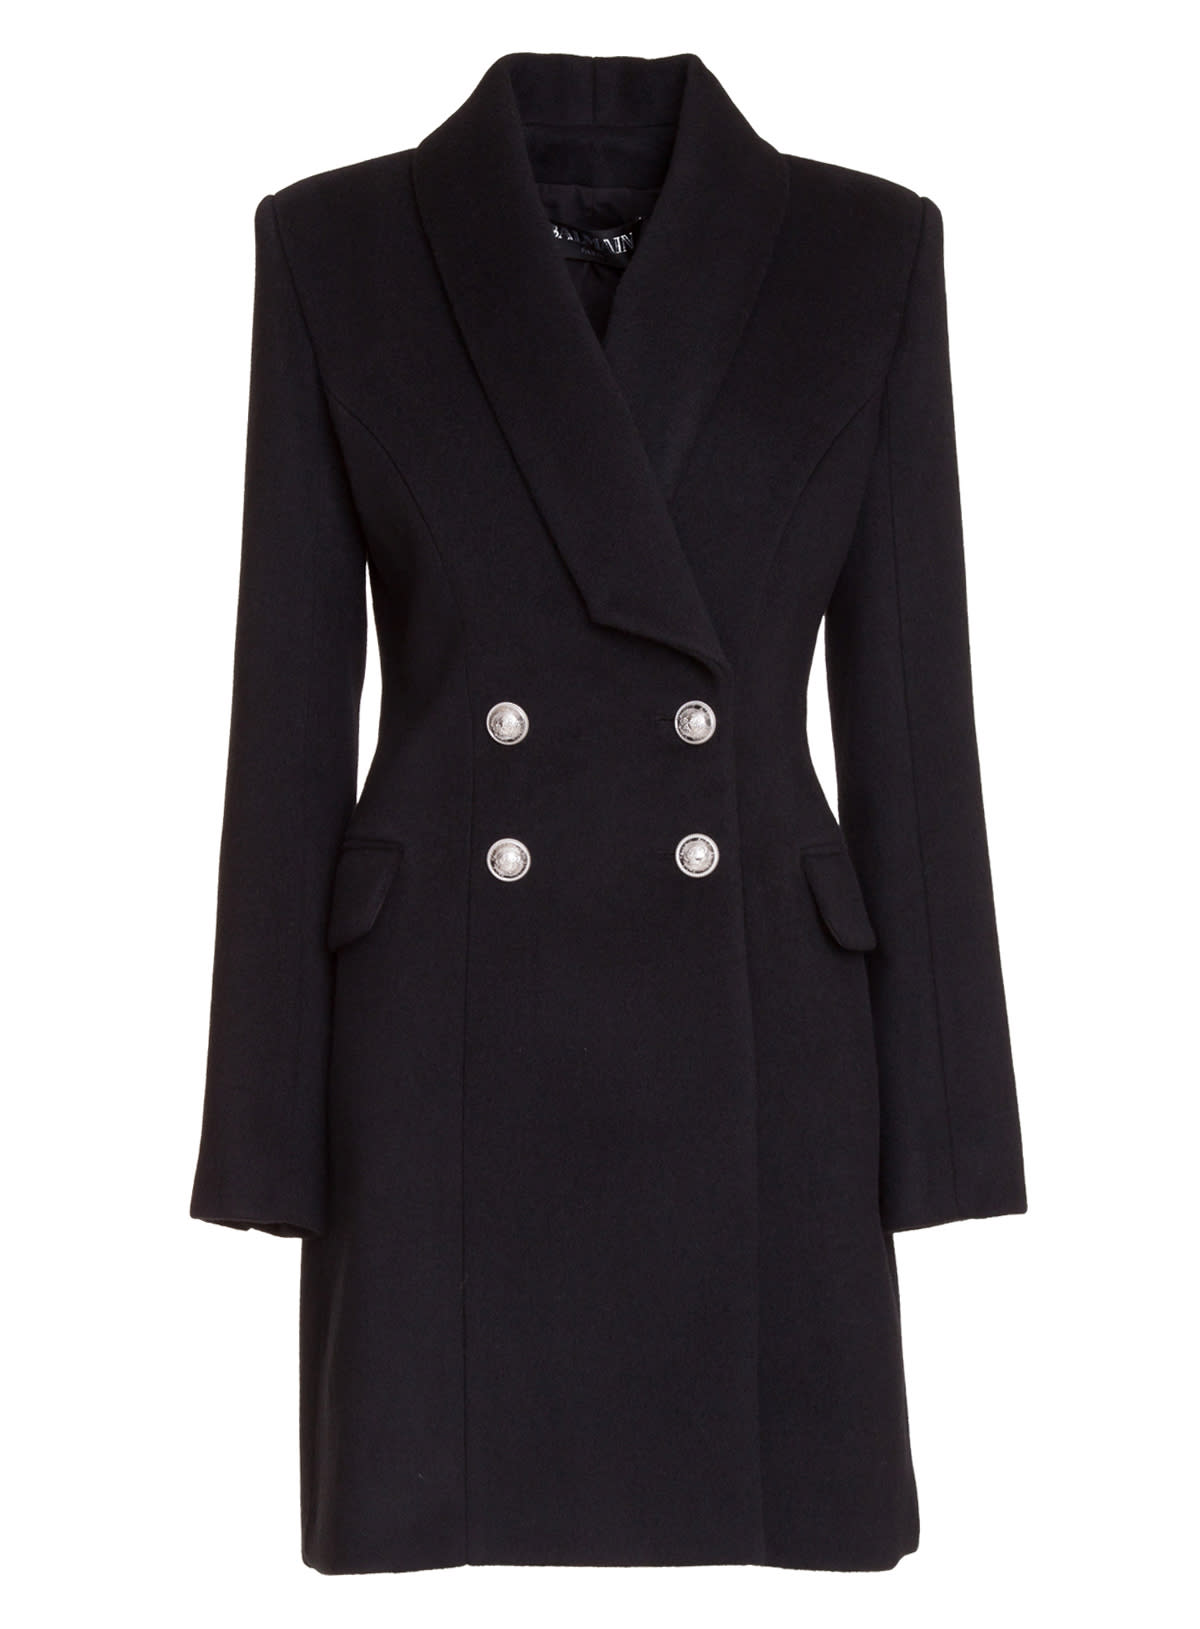 Balmain Black Double-breasted Wool Coat With Silver Buttons